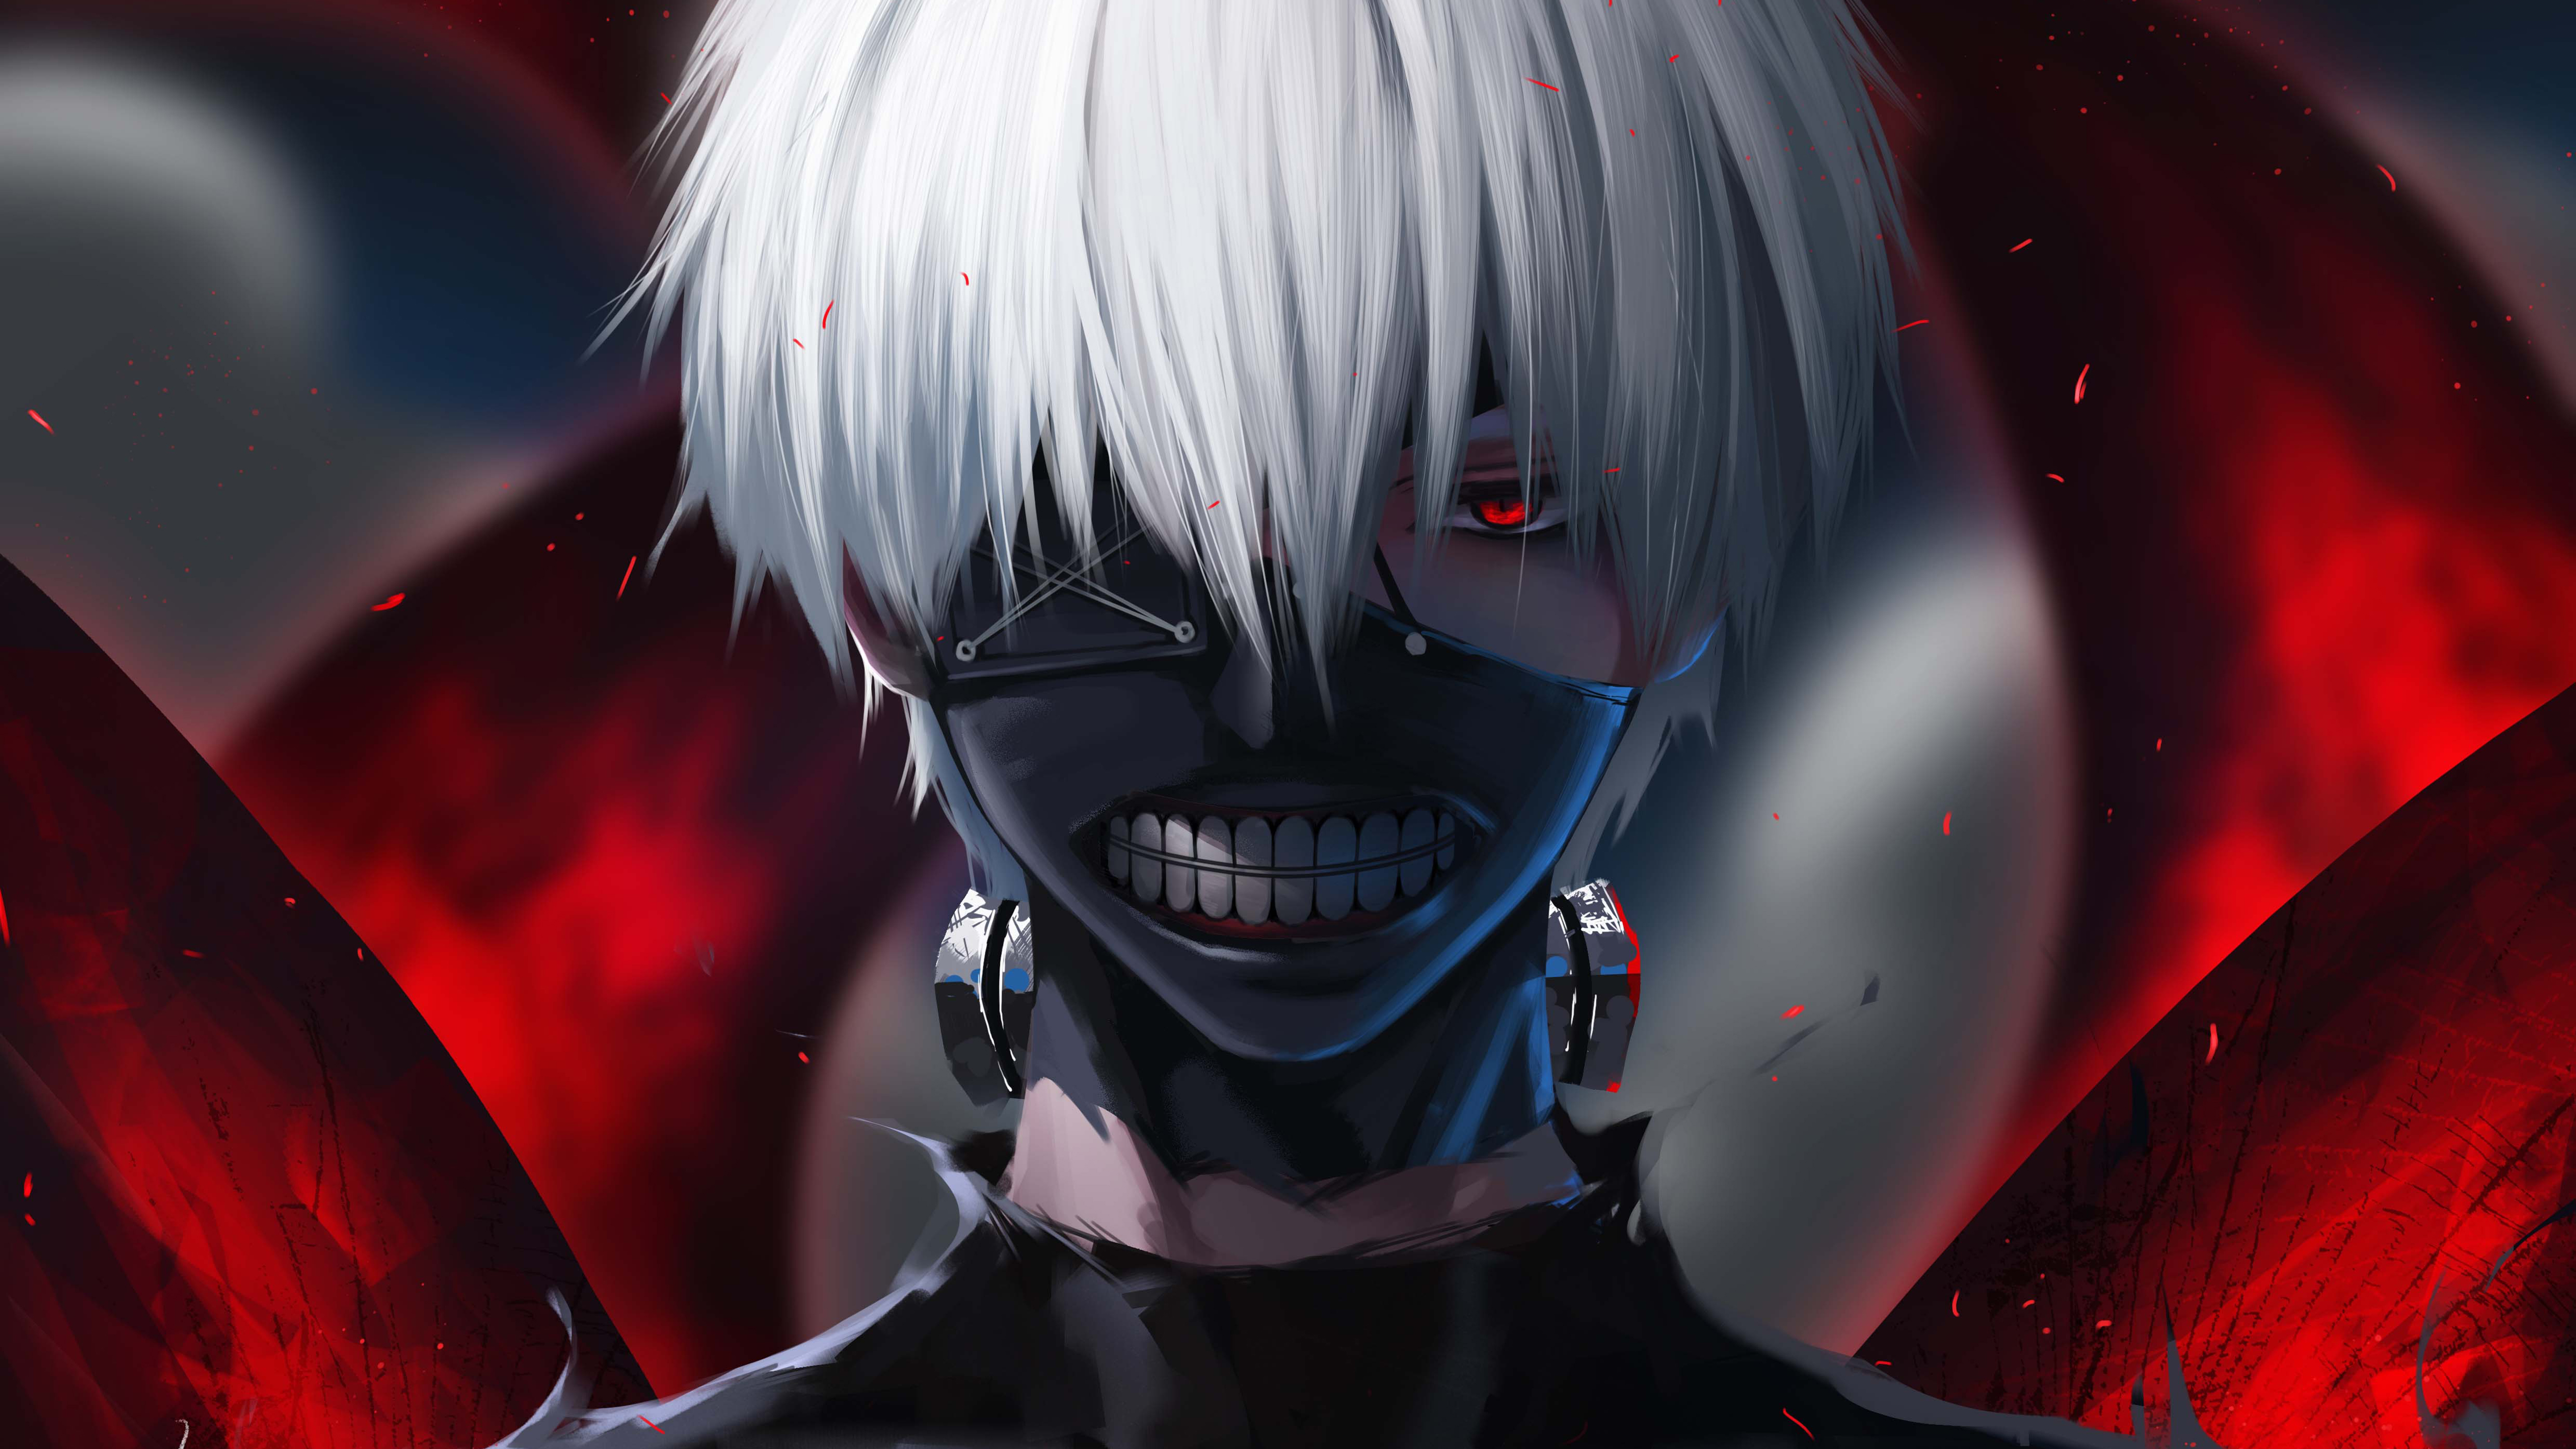 Make your device cooler and more beautiful. Tokyo Ghoul 5K Wallpapers | HD Wallpapers | ID #28466